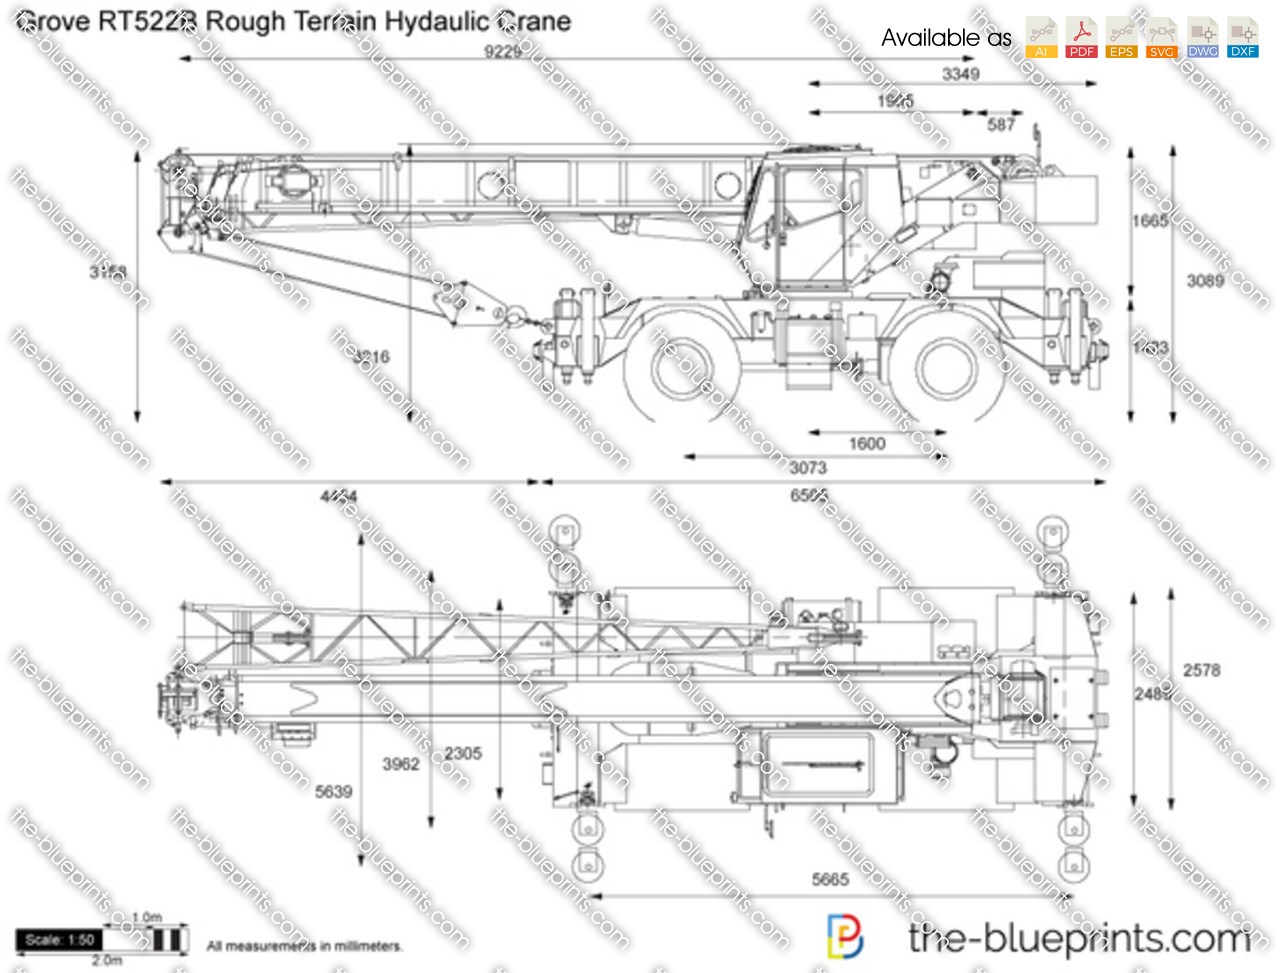 Grove RT522B Rough Terrain Hydaulic Crane